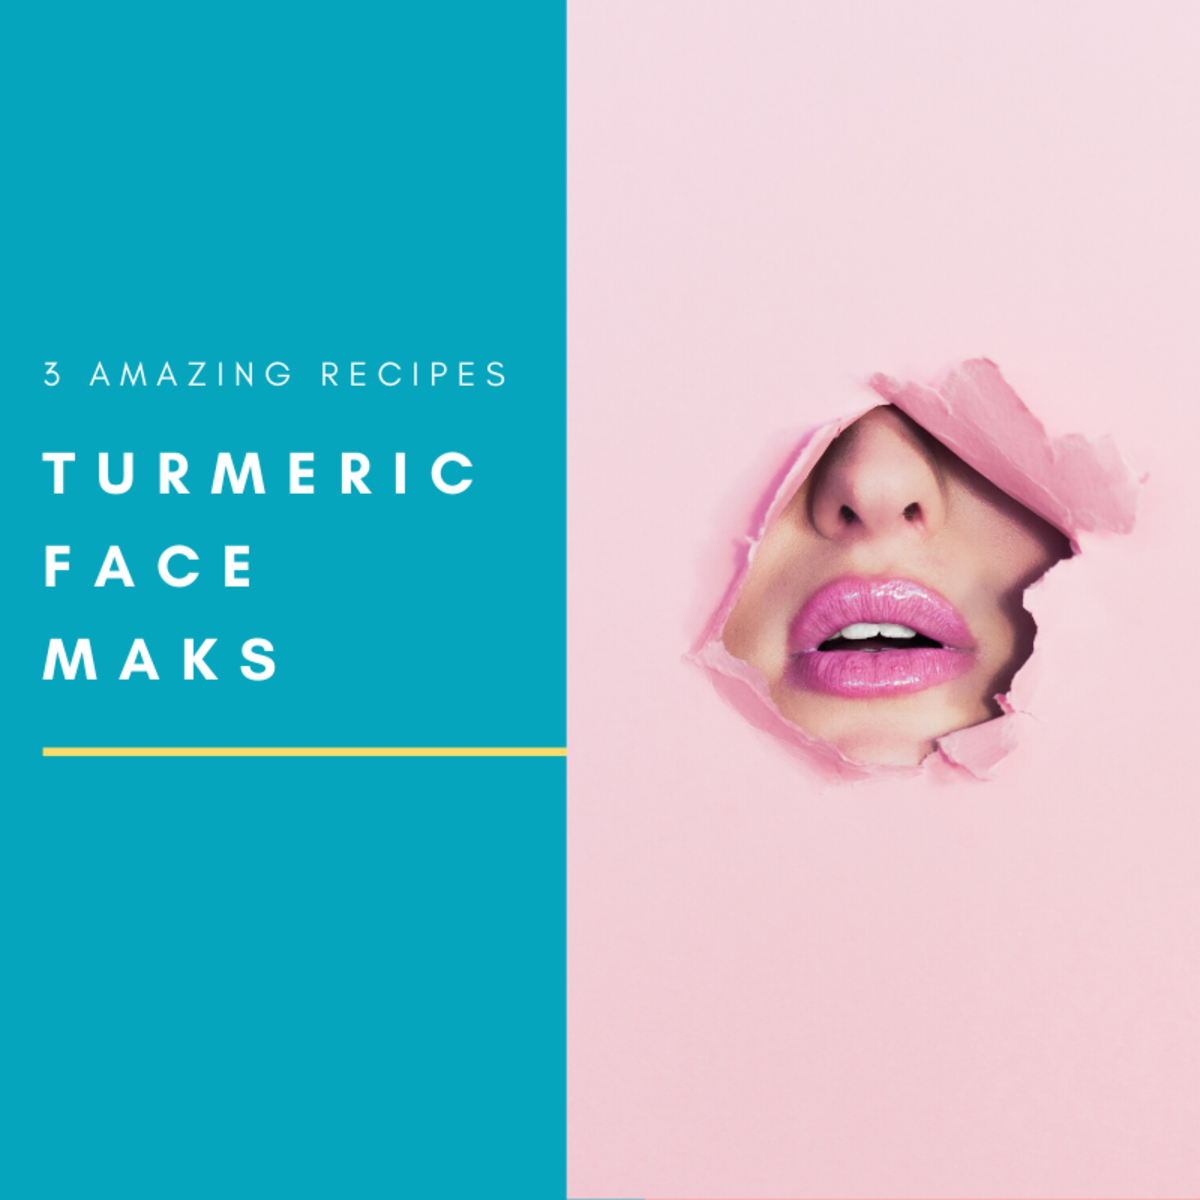 Turmeric Face Mask Recipes: True Secret to Glowing Skin